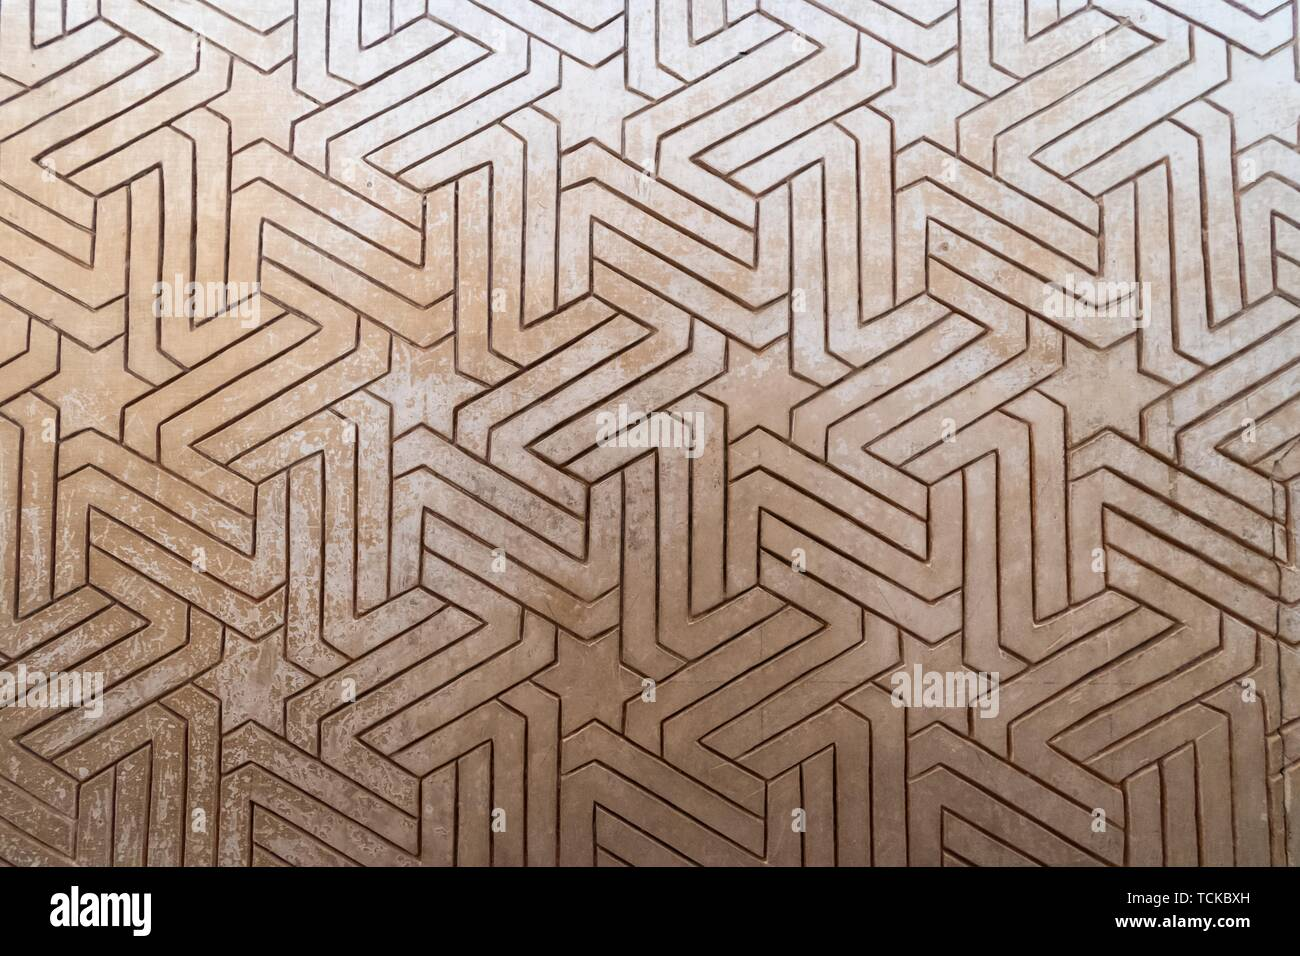 Geometric Moorish plaster decorations, Nazarite palaces, Alhambra, Granada, Andalusia, Spain Stock Photo